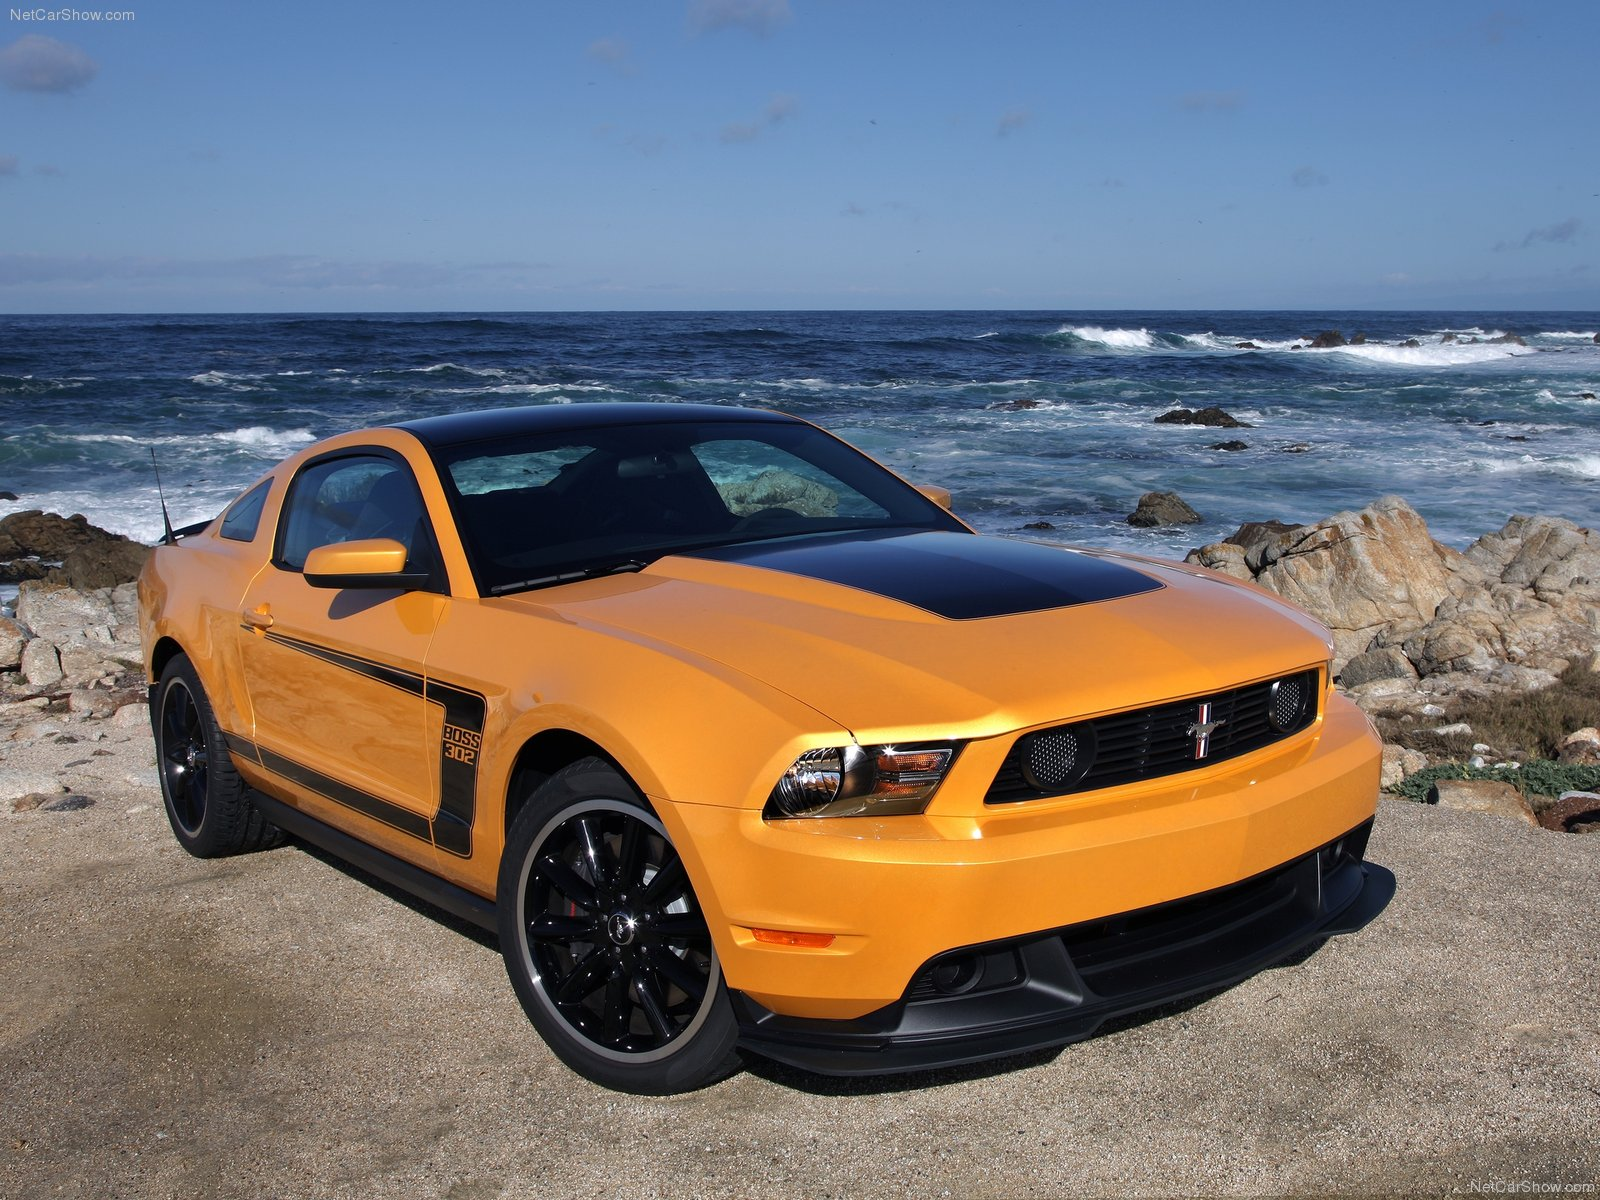 Ford Mustang Boss 302 photo 78993